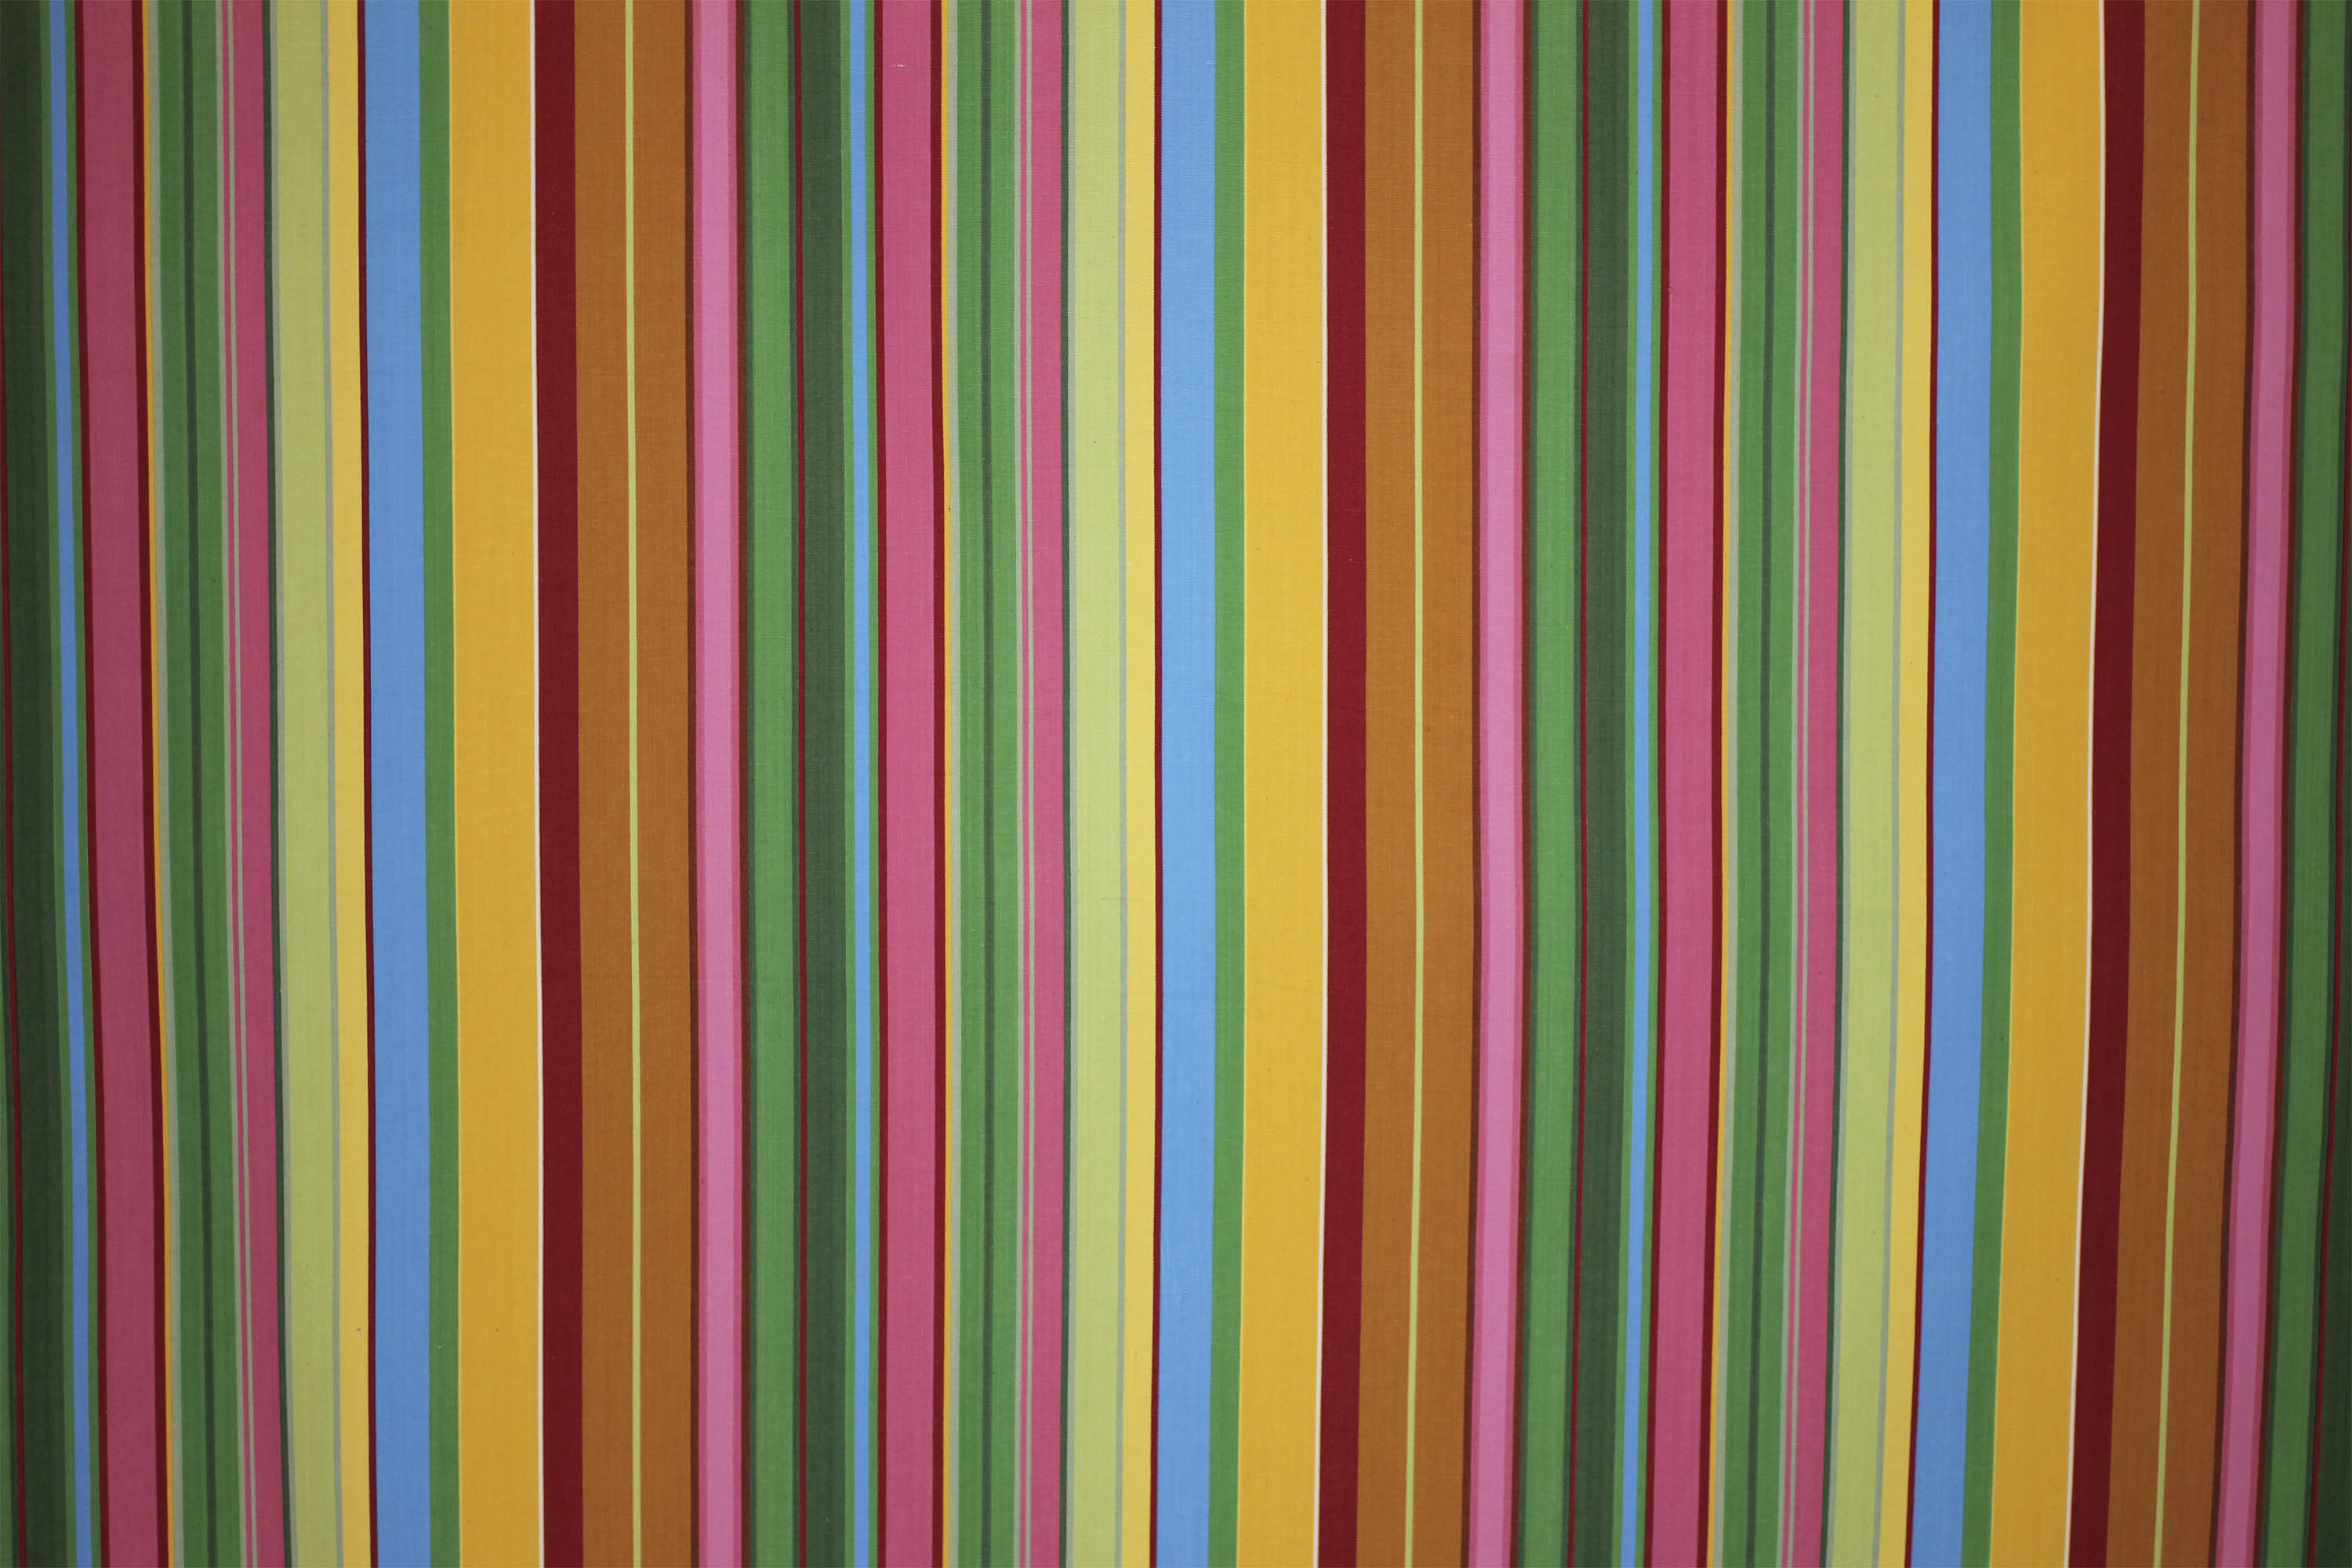 Snooker Pink and Green Striped Fabric